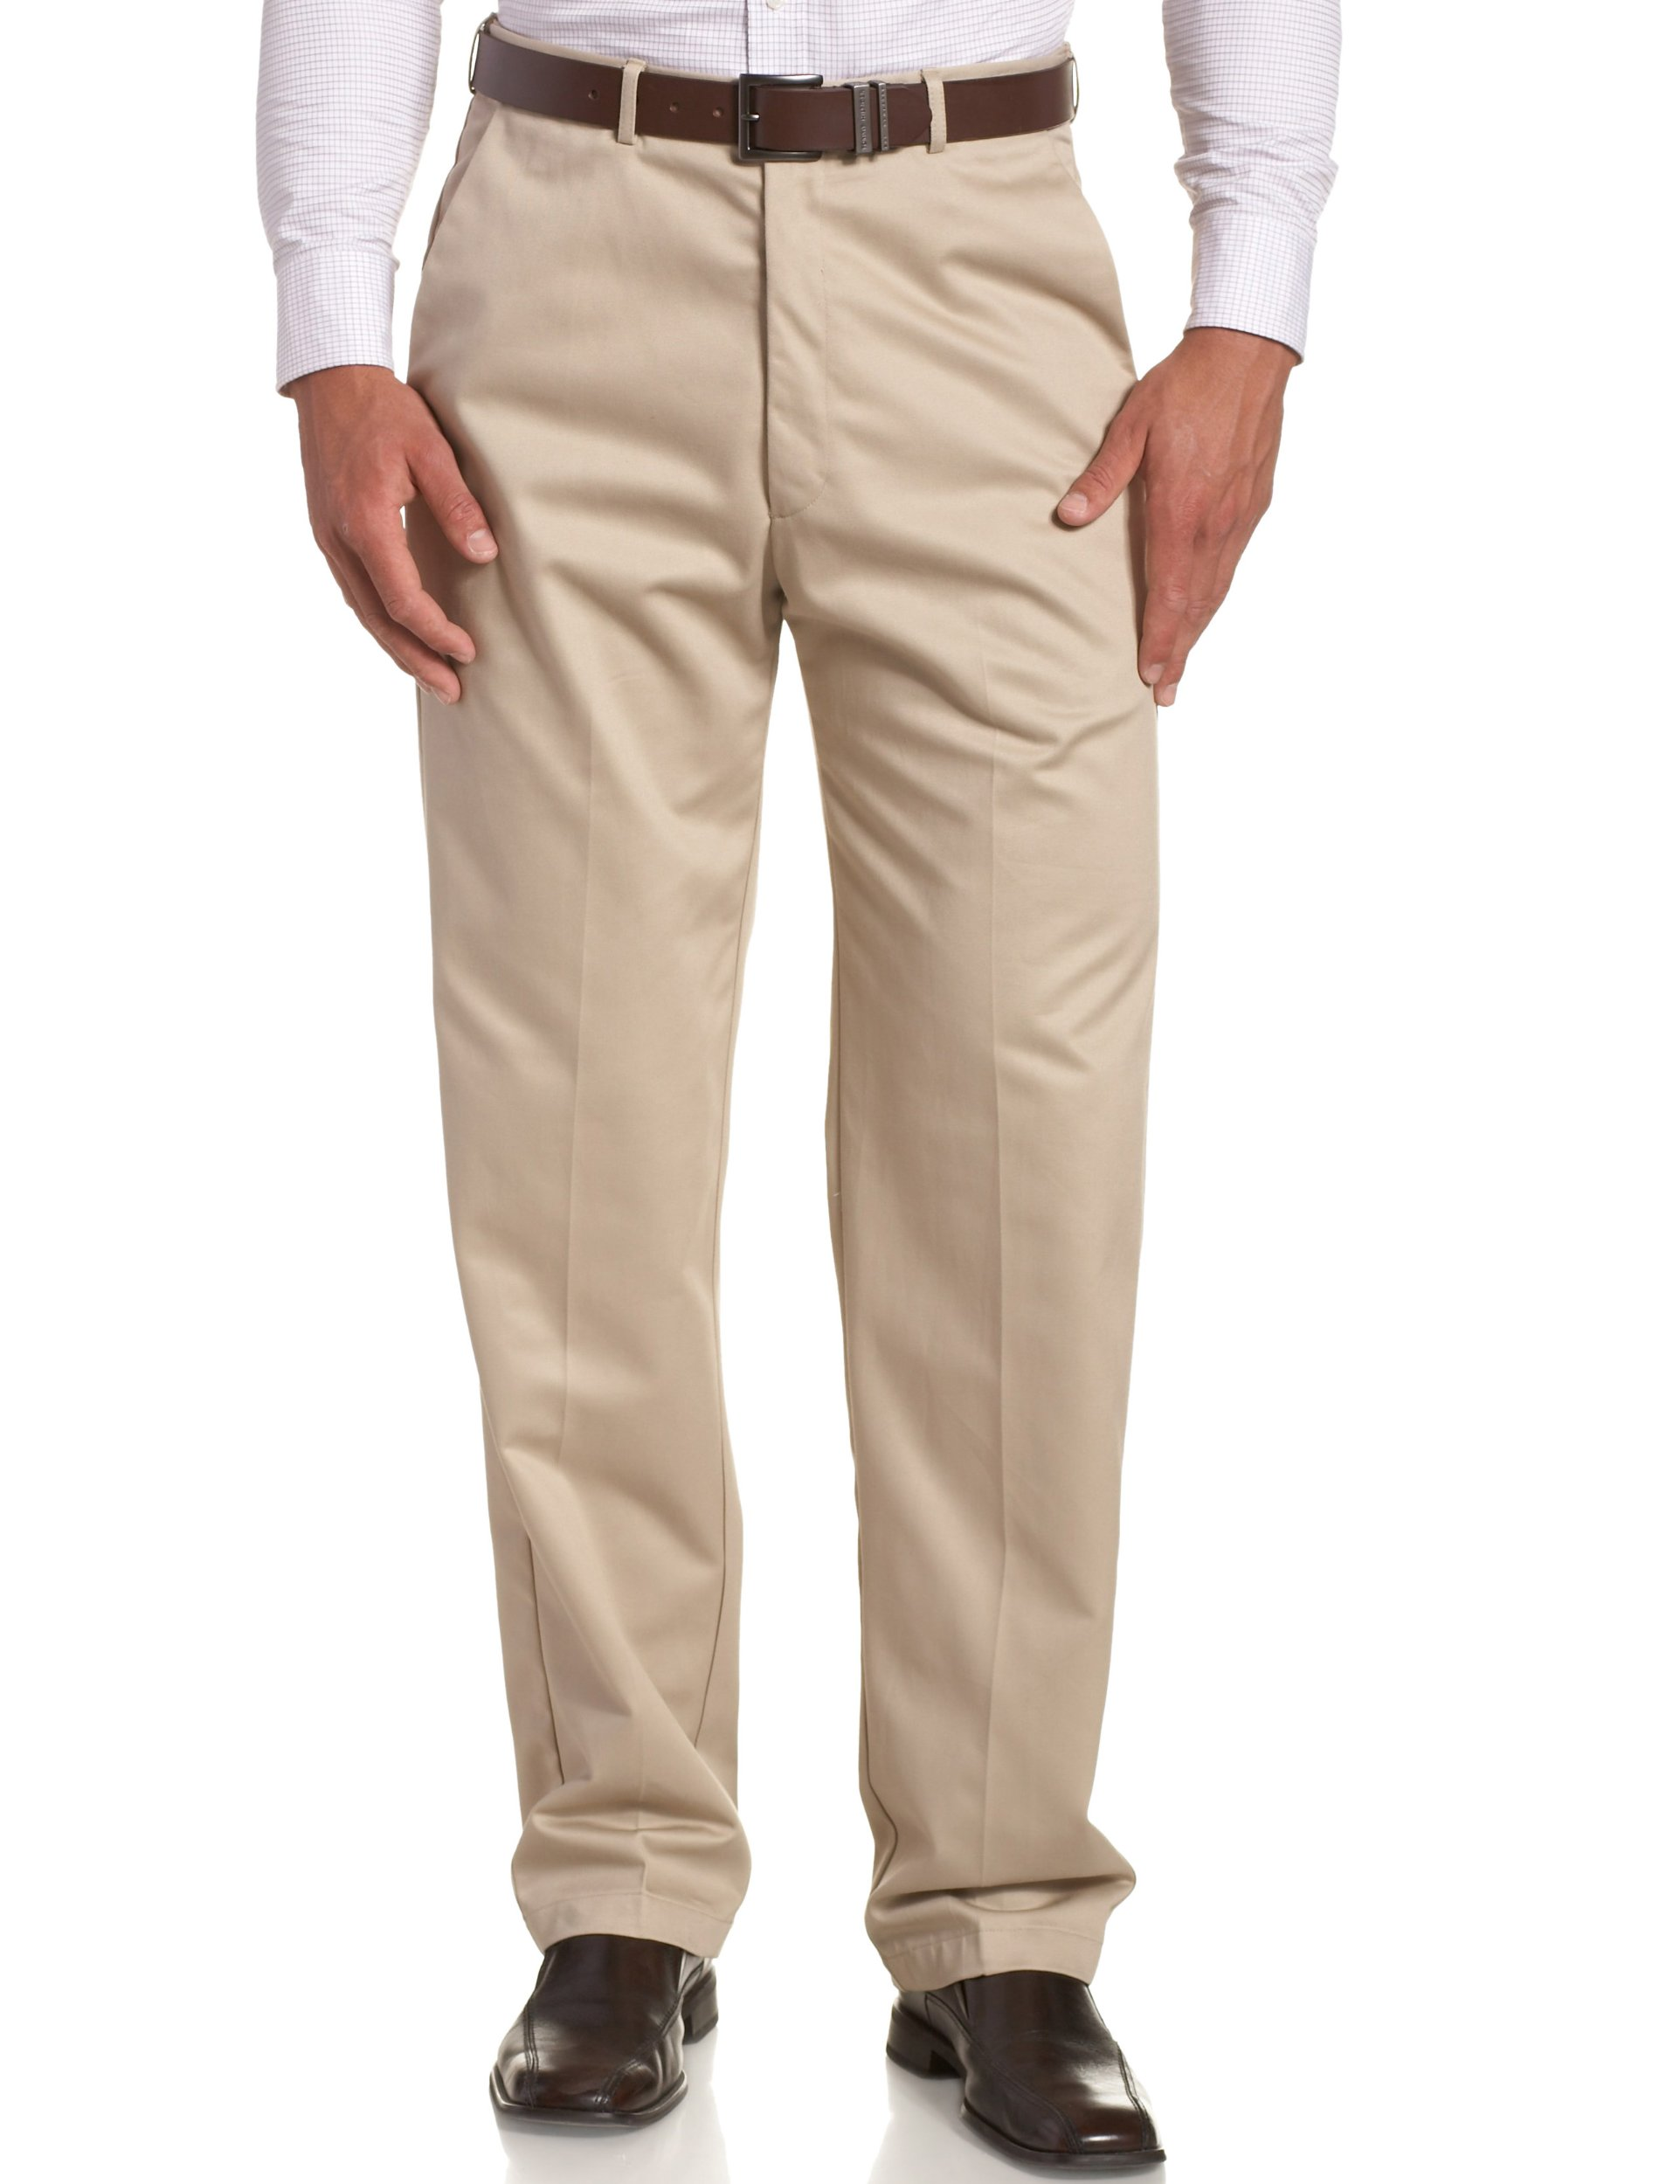 Haggar Men's Work To Weekend Hidden Expandable Waist No Iron Plain Front Pant,Khaki,40x30 by Haggar